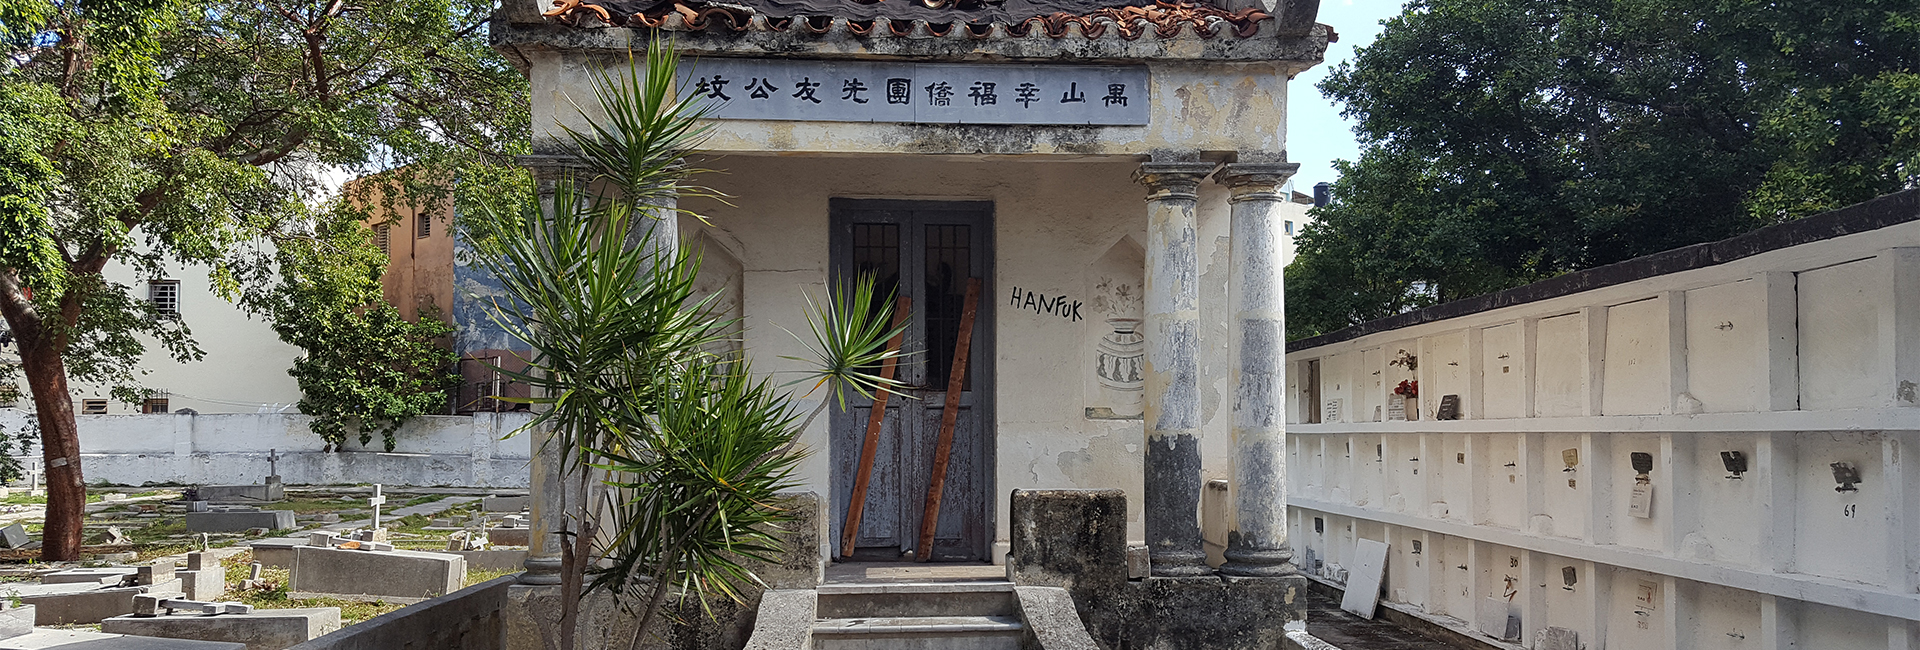 Chinese Influences on Life and Religion in Cuba